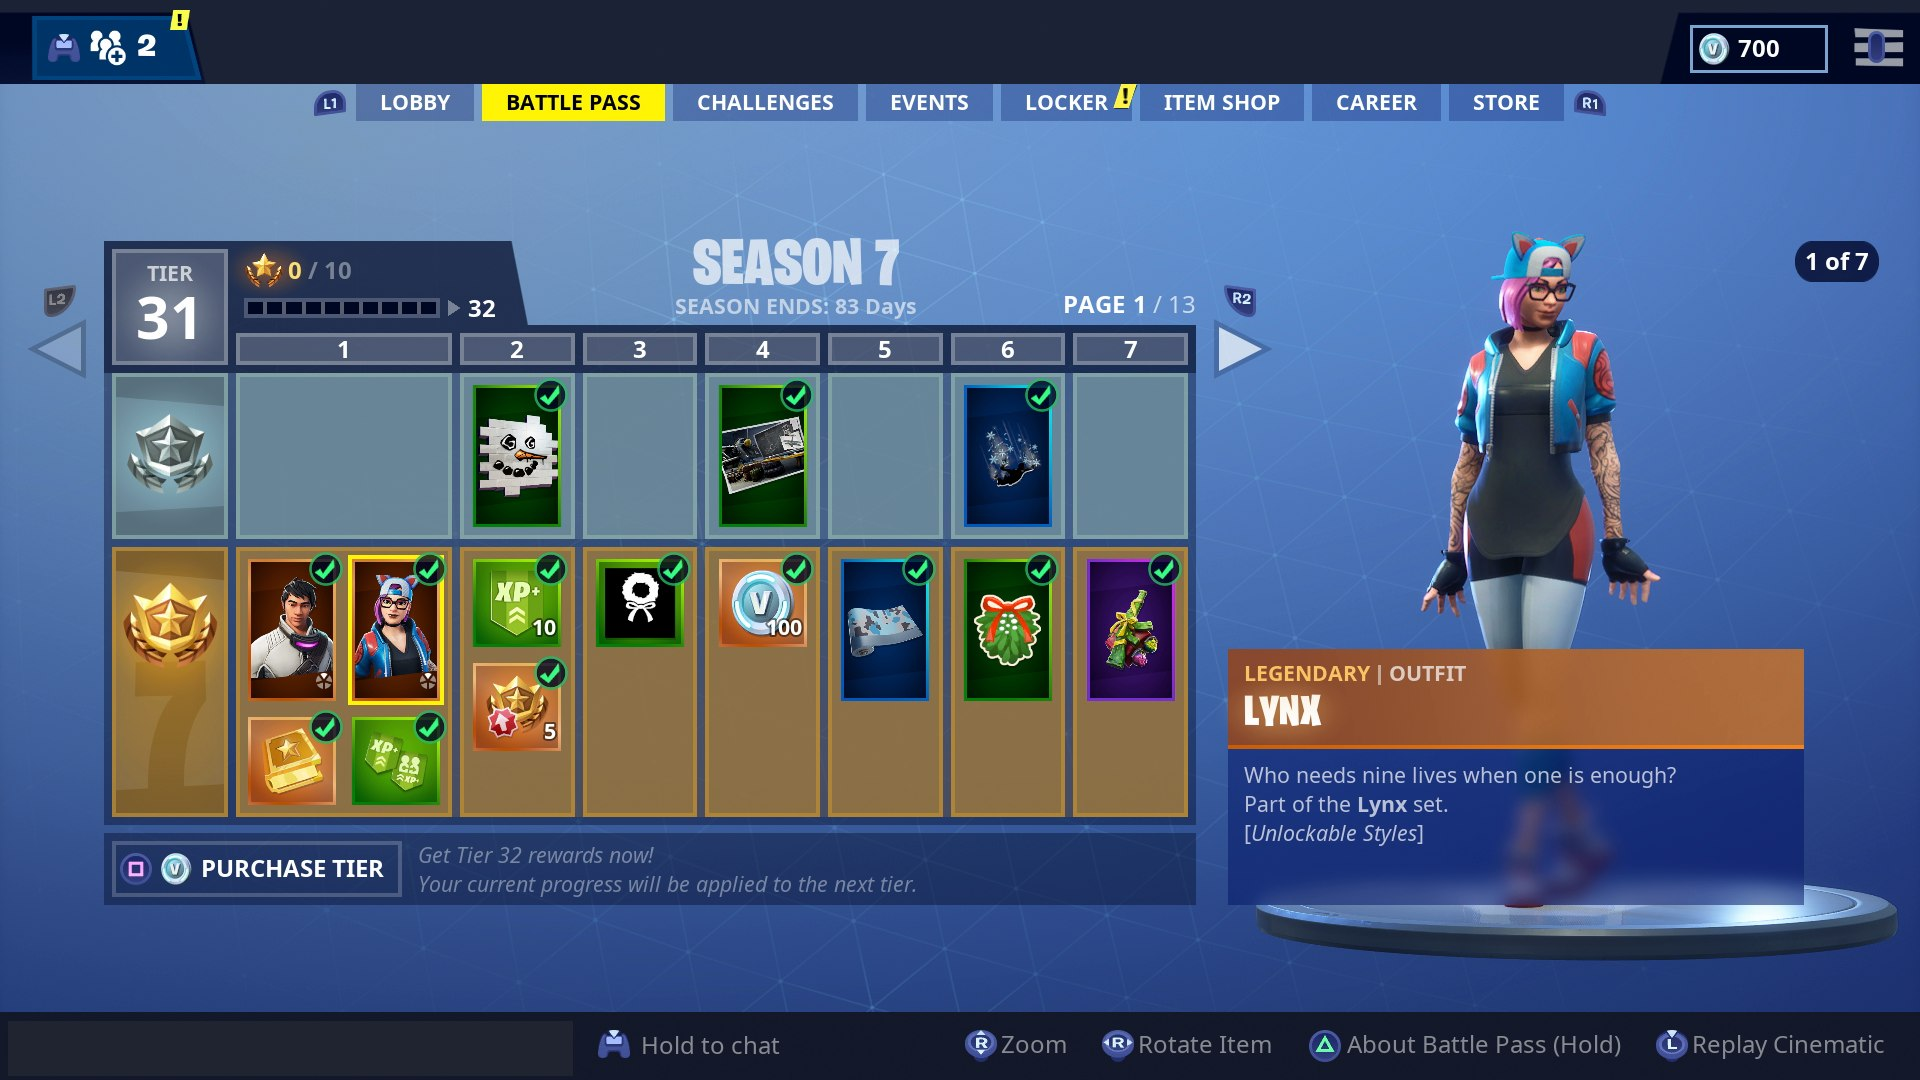 Battle Pass, while not perfect, is a good example of a premium experience the player receives from a subscription. It also creates a very powerful loop, where a subscribed player is rewarded for engaging more.